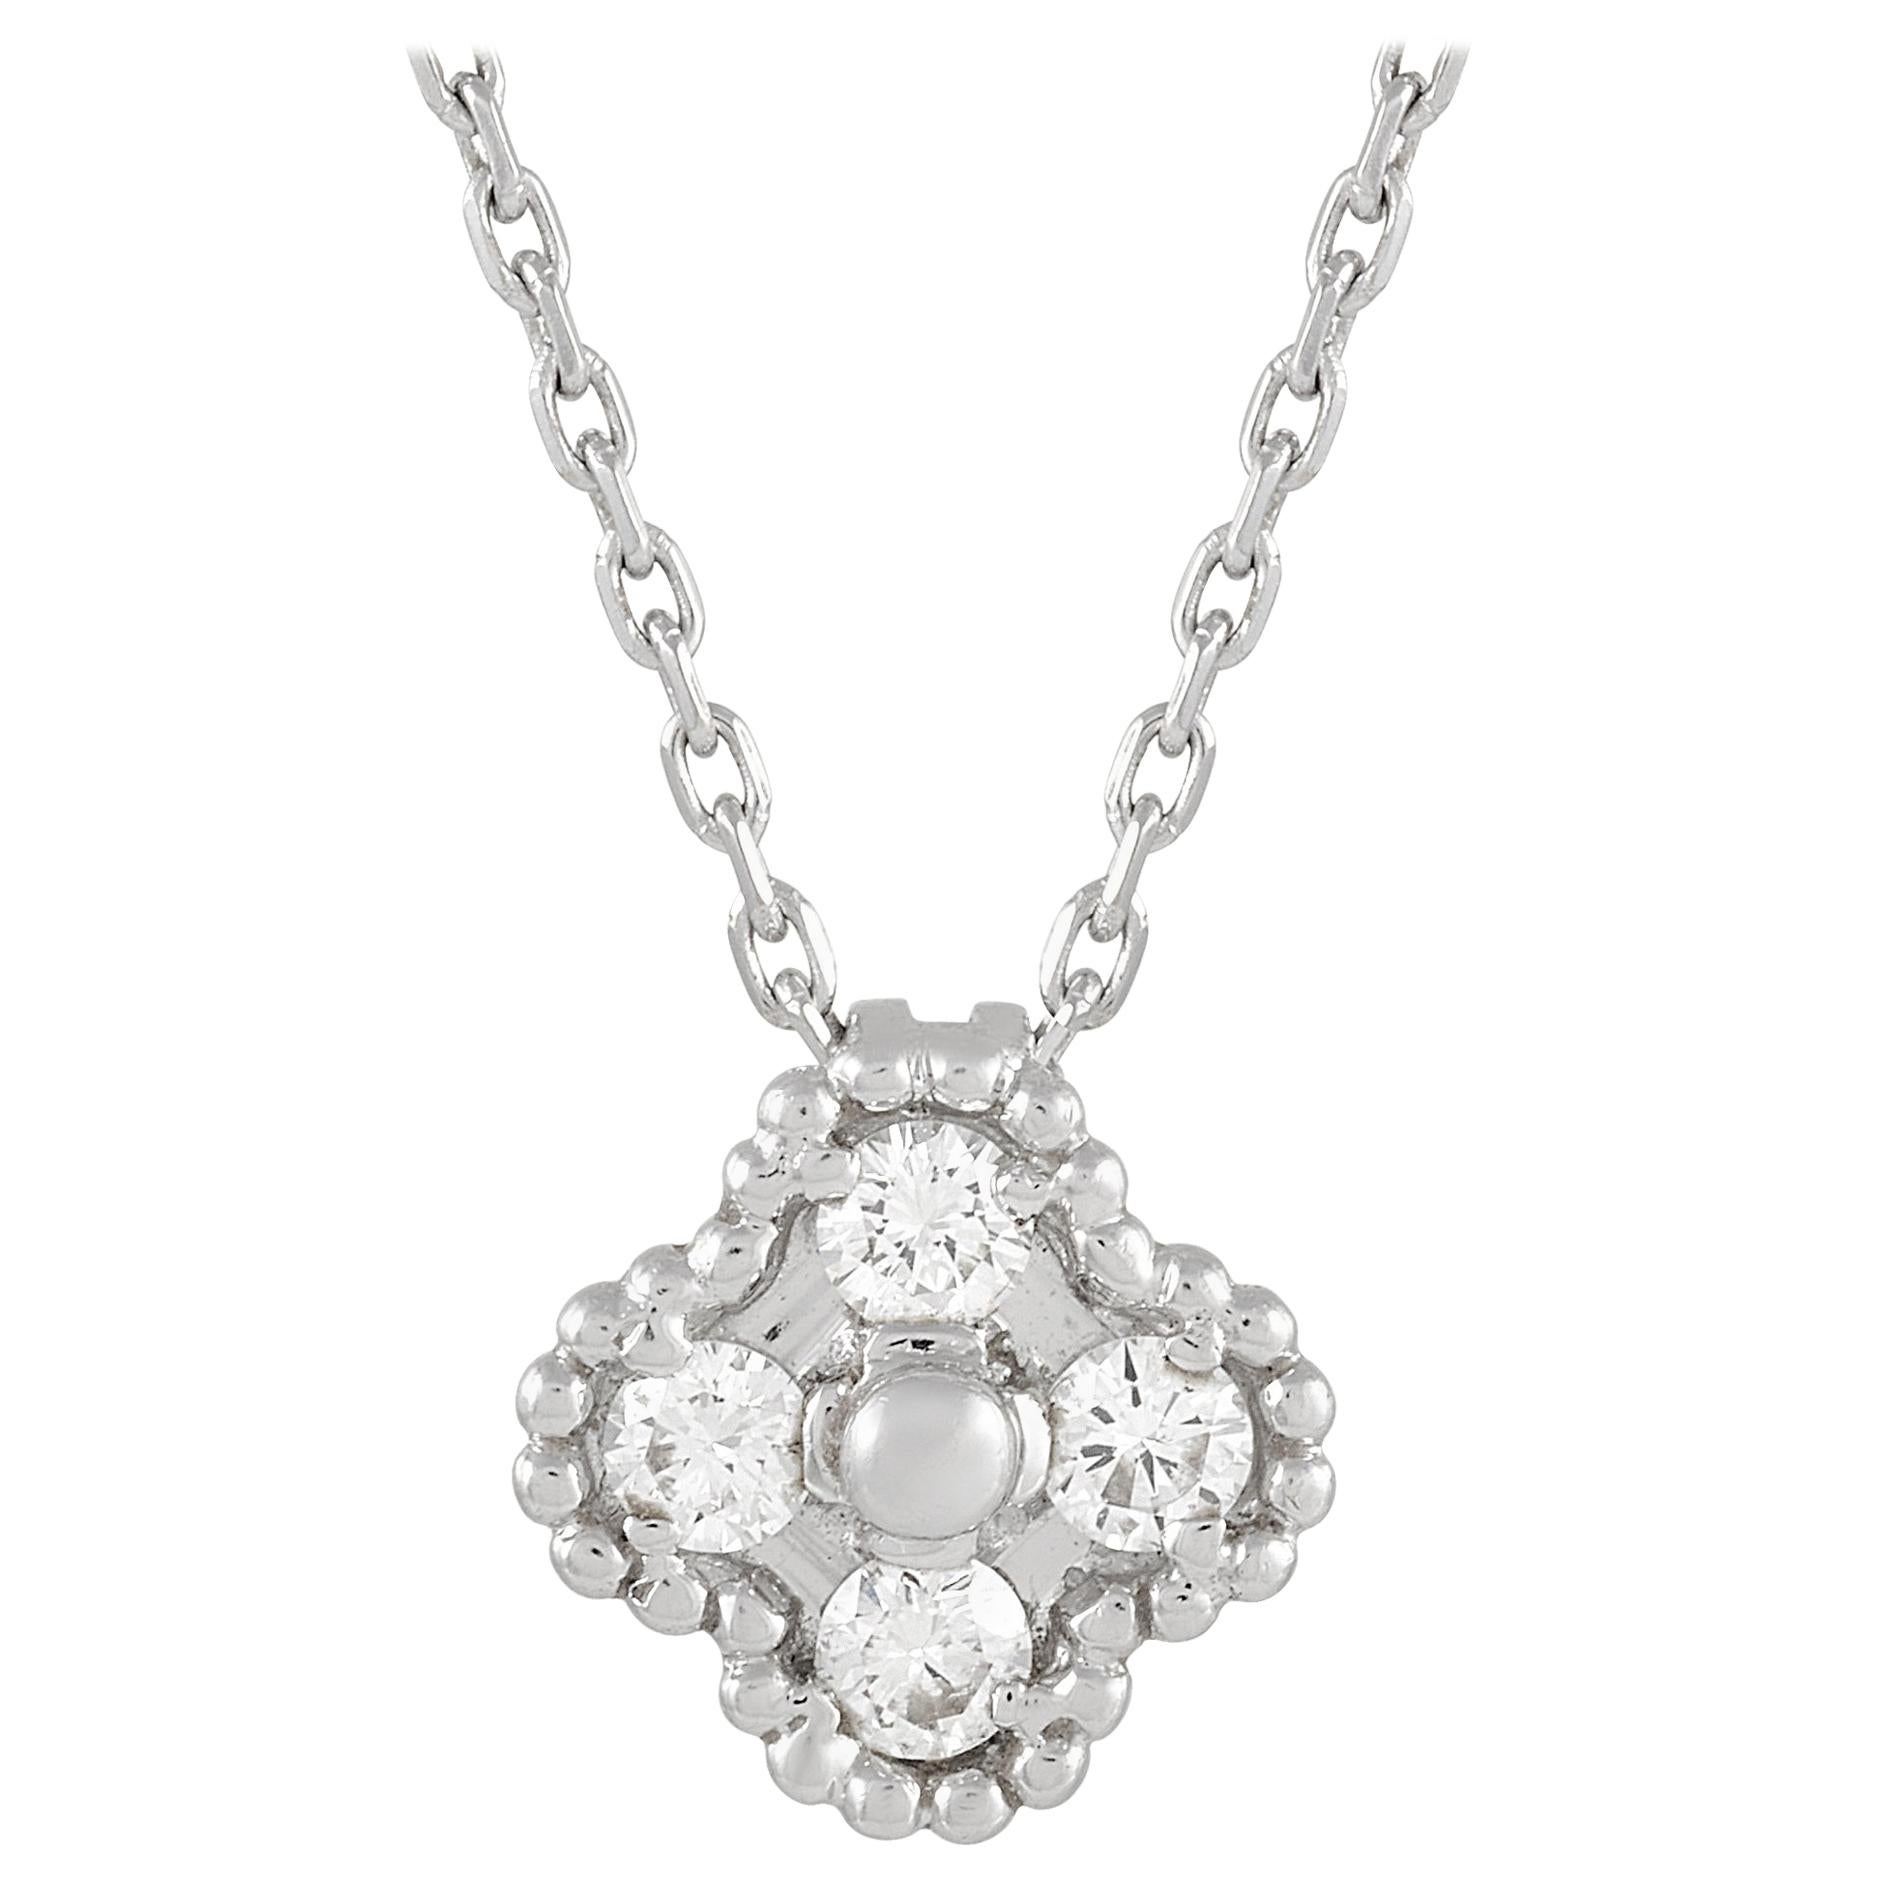 Van Cleef & Arpels Sweet Alhambra 18k White Gold Diamond Necklace